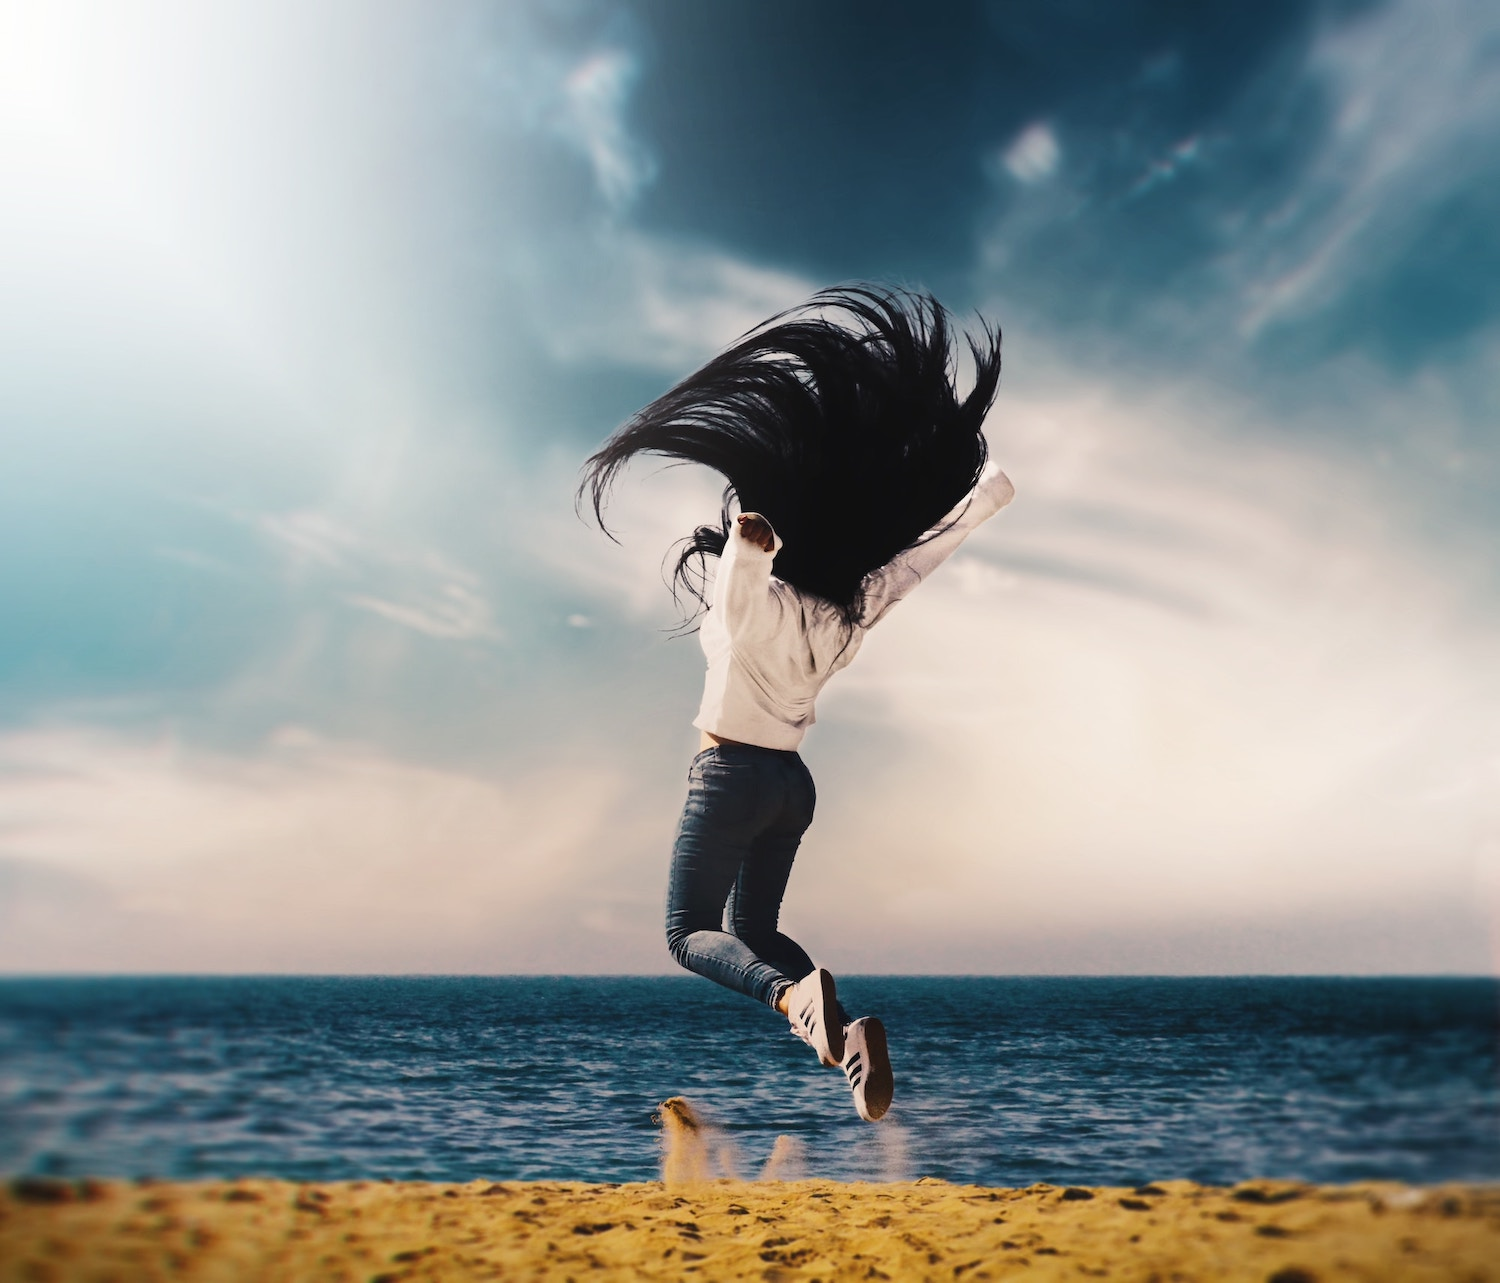 girl-jumping-for-joy-ocean-background